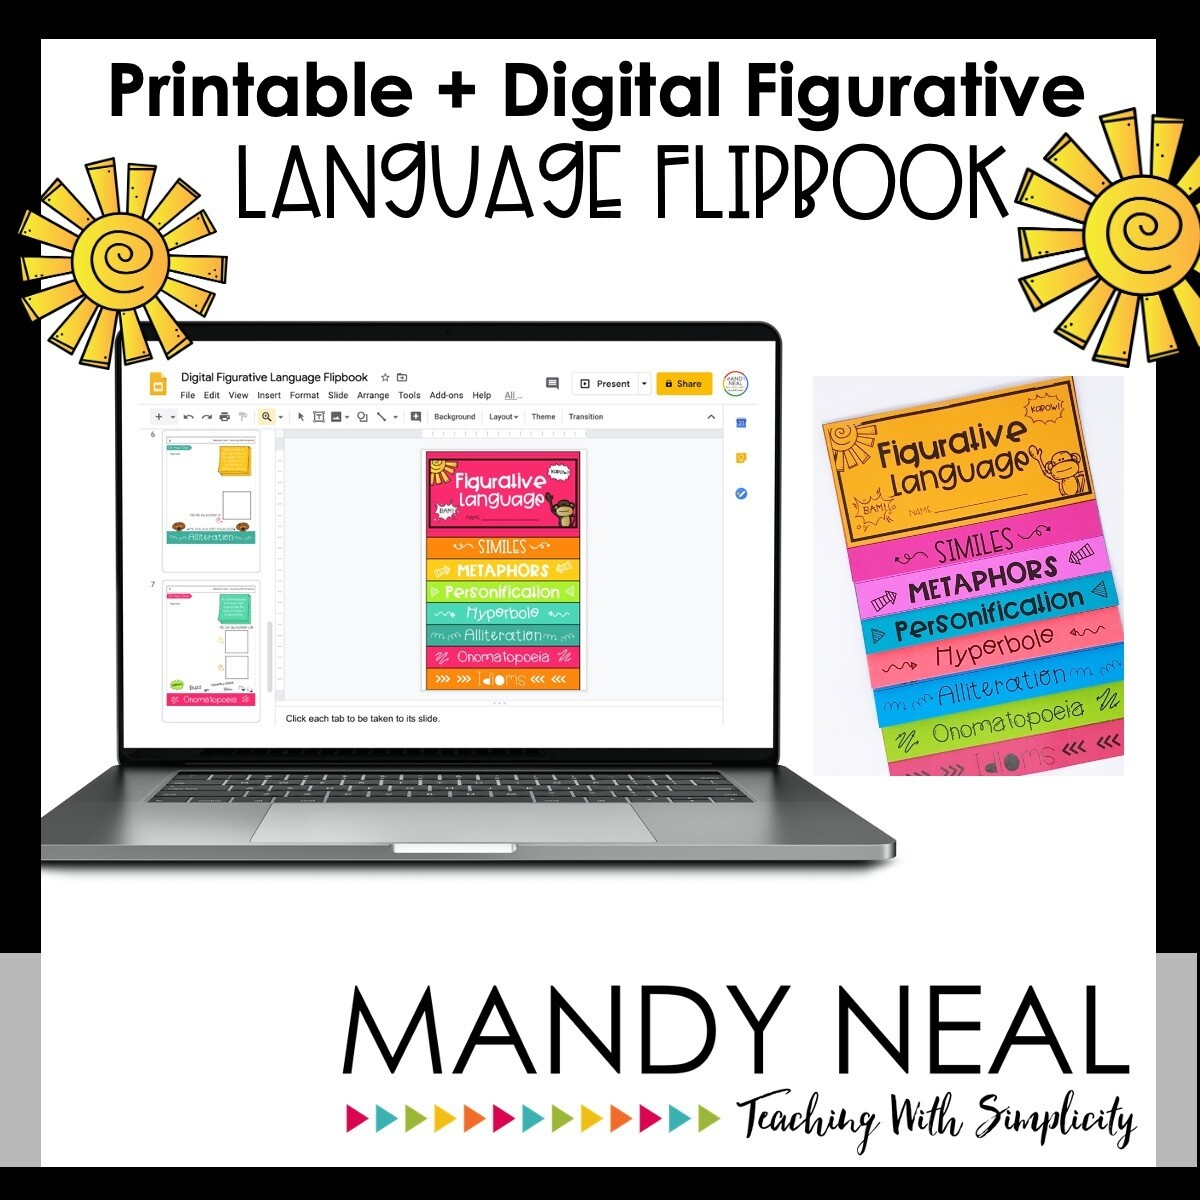 Printable + Digital Figurative Language Flipbook